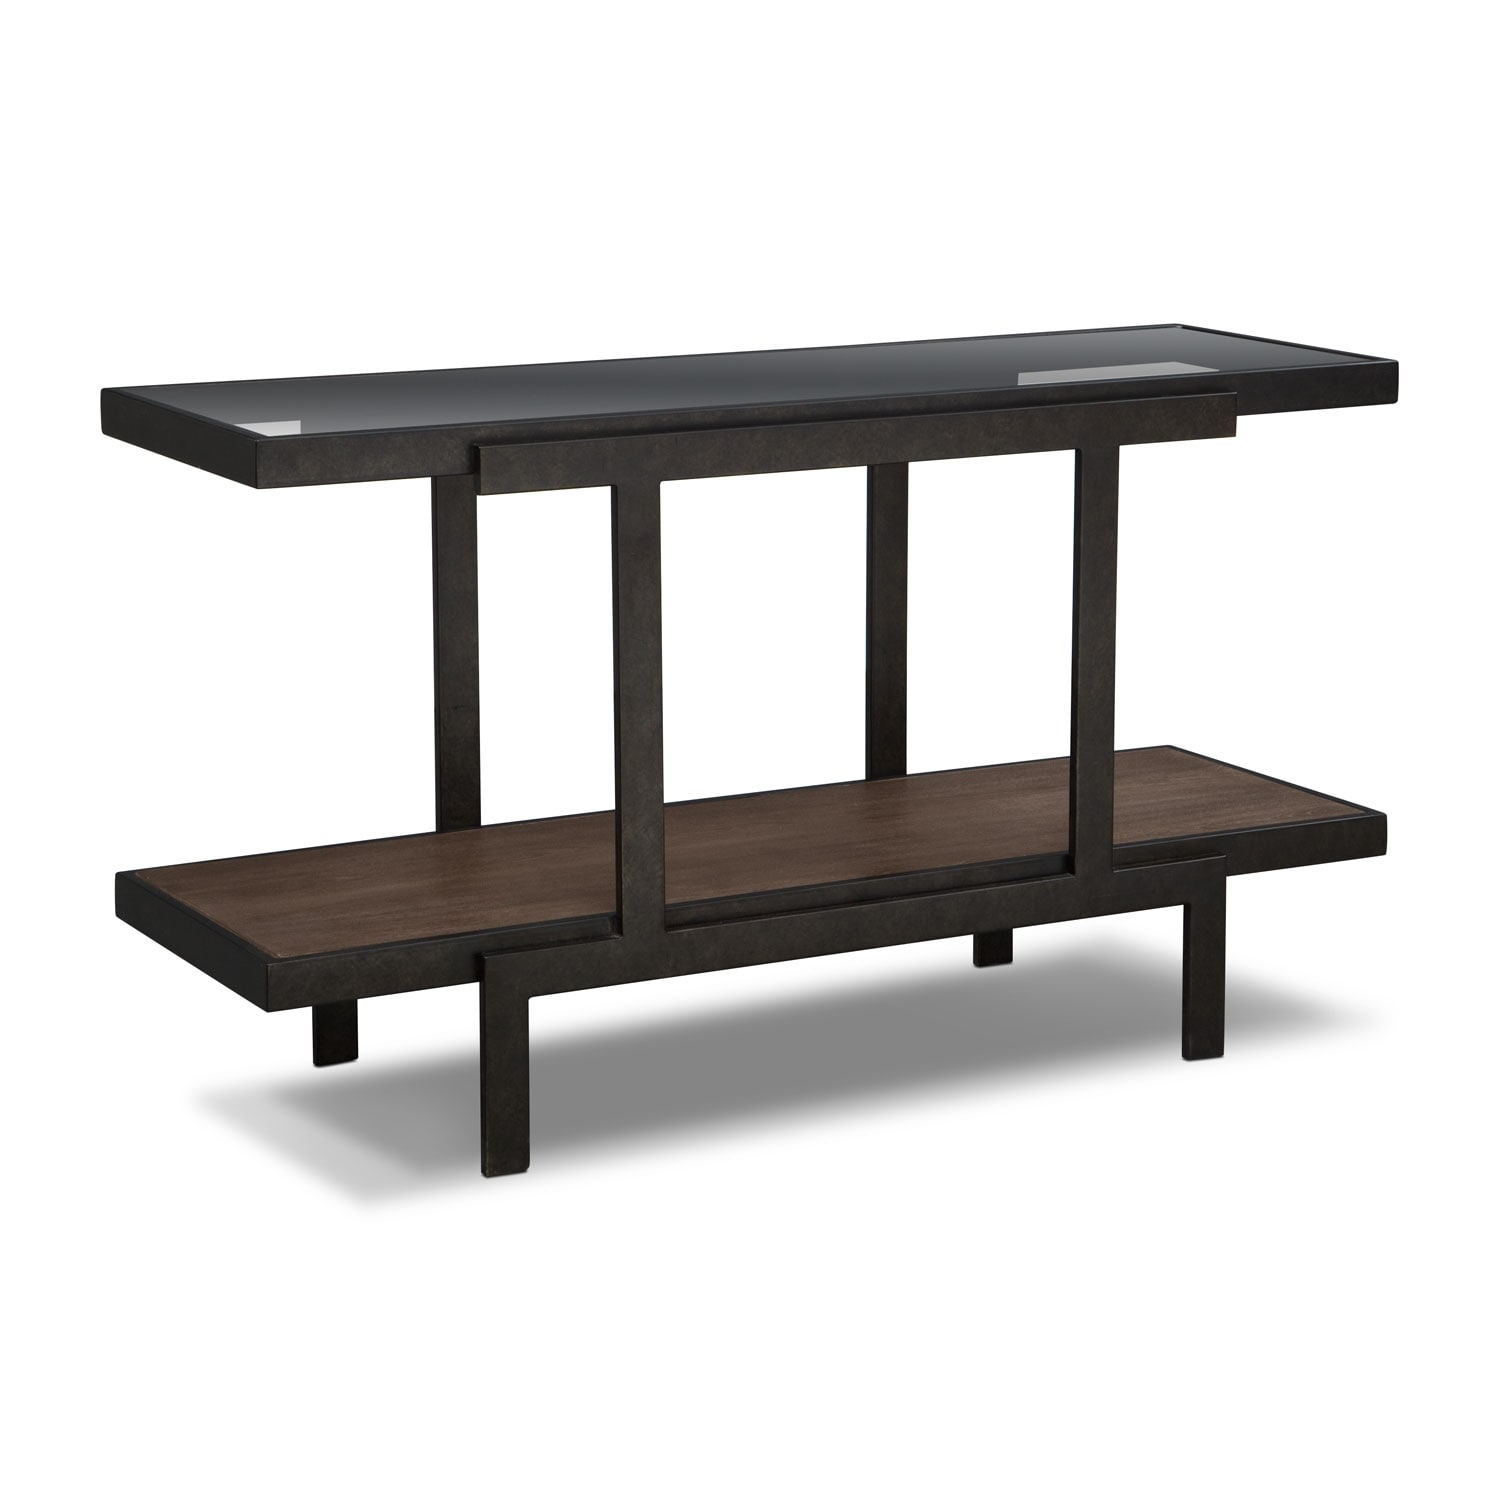 Beasley Sofa Table - Espresso